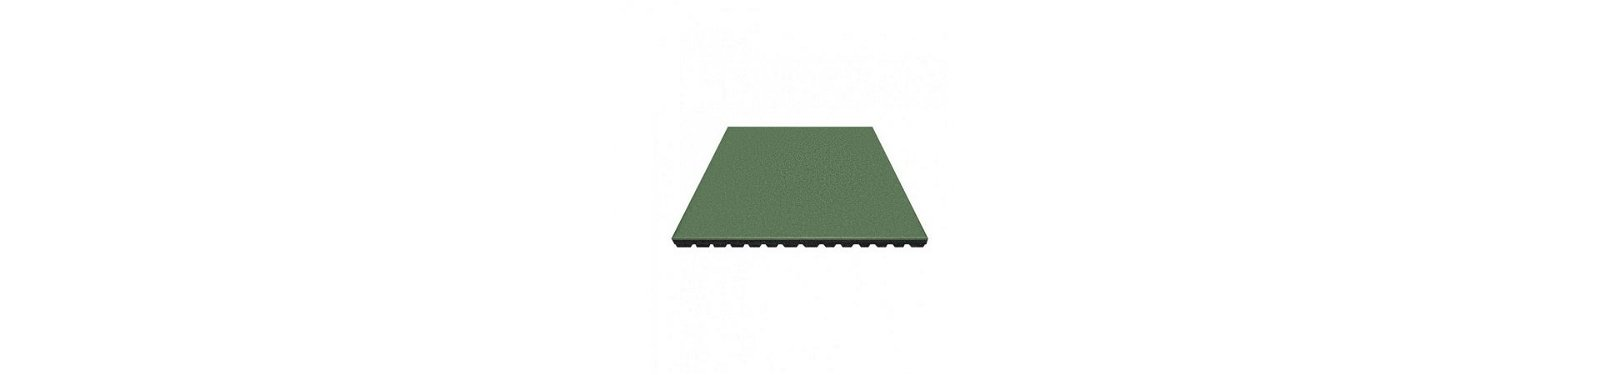 Play finger mats in various colors and sizes. Safe surfaces